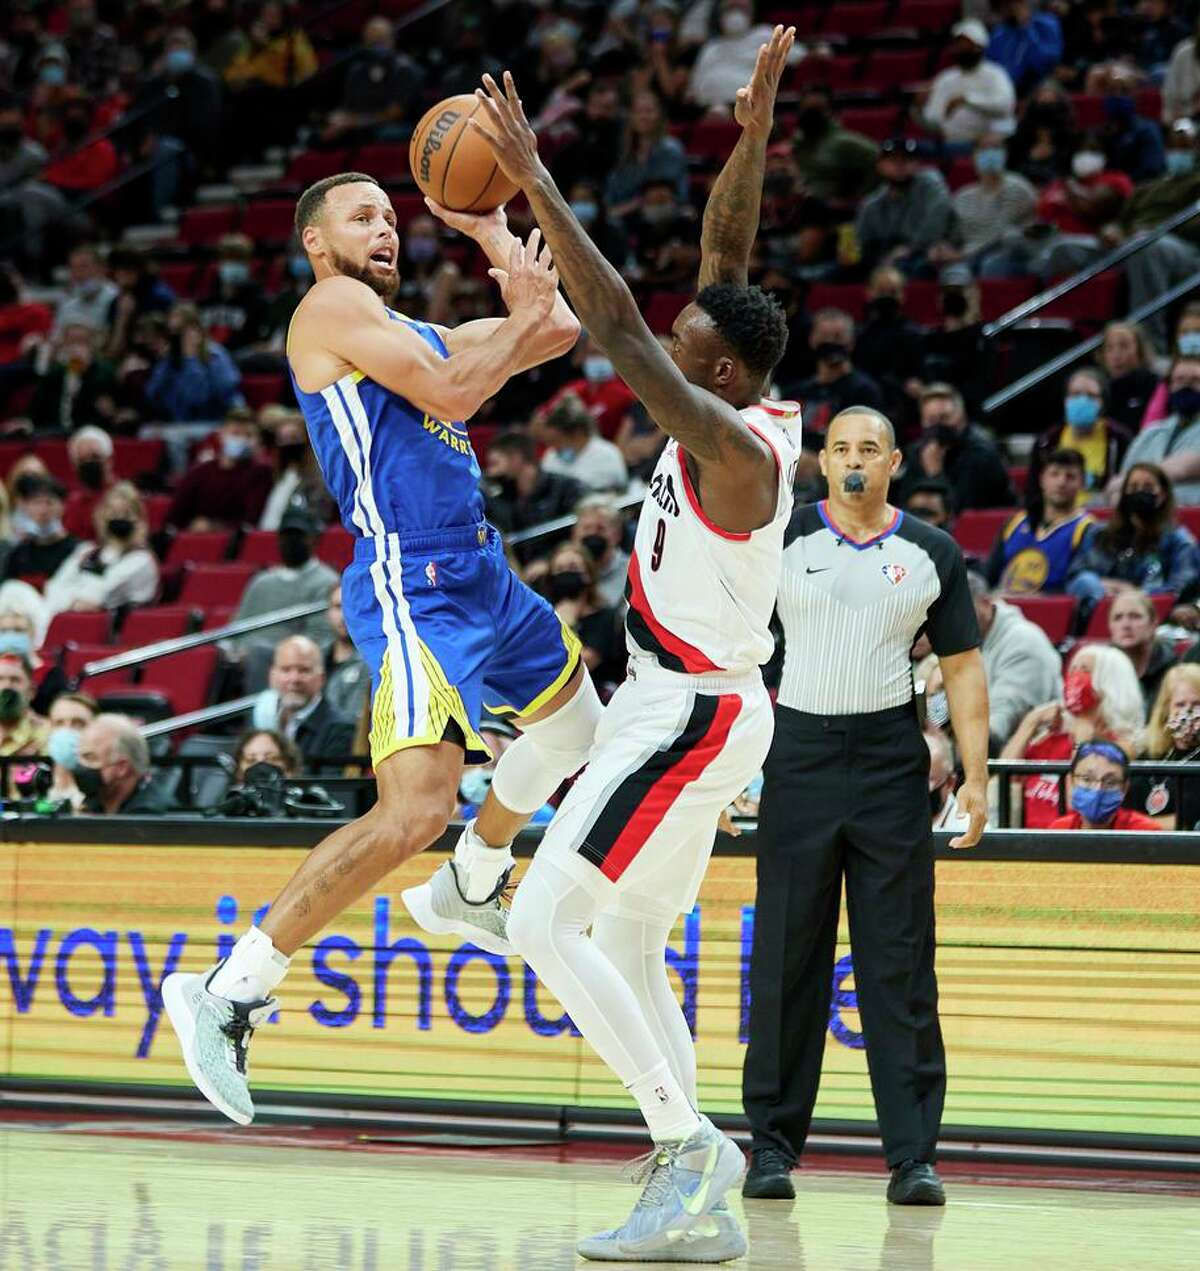 Warriors guard Stephen Curry shoots over the Blazers' Nassir Little during the preseason game Monday in Portland.